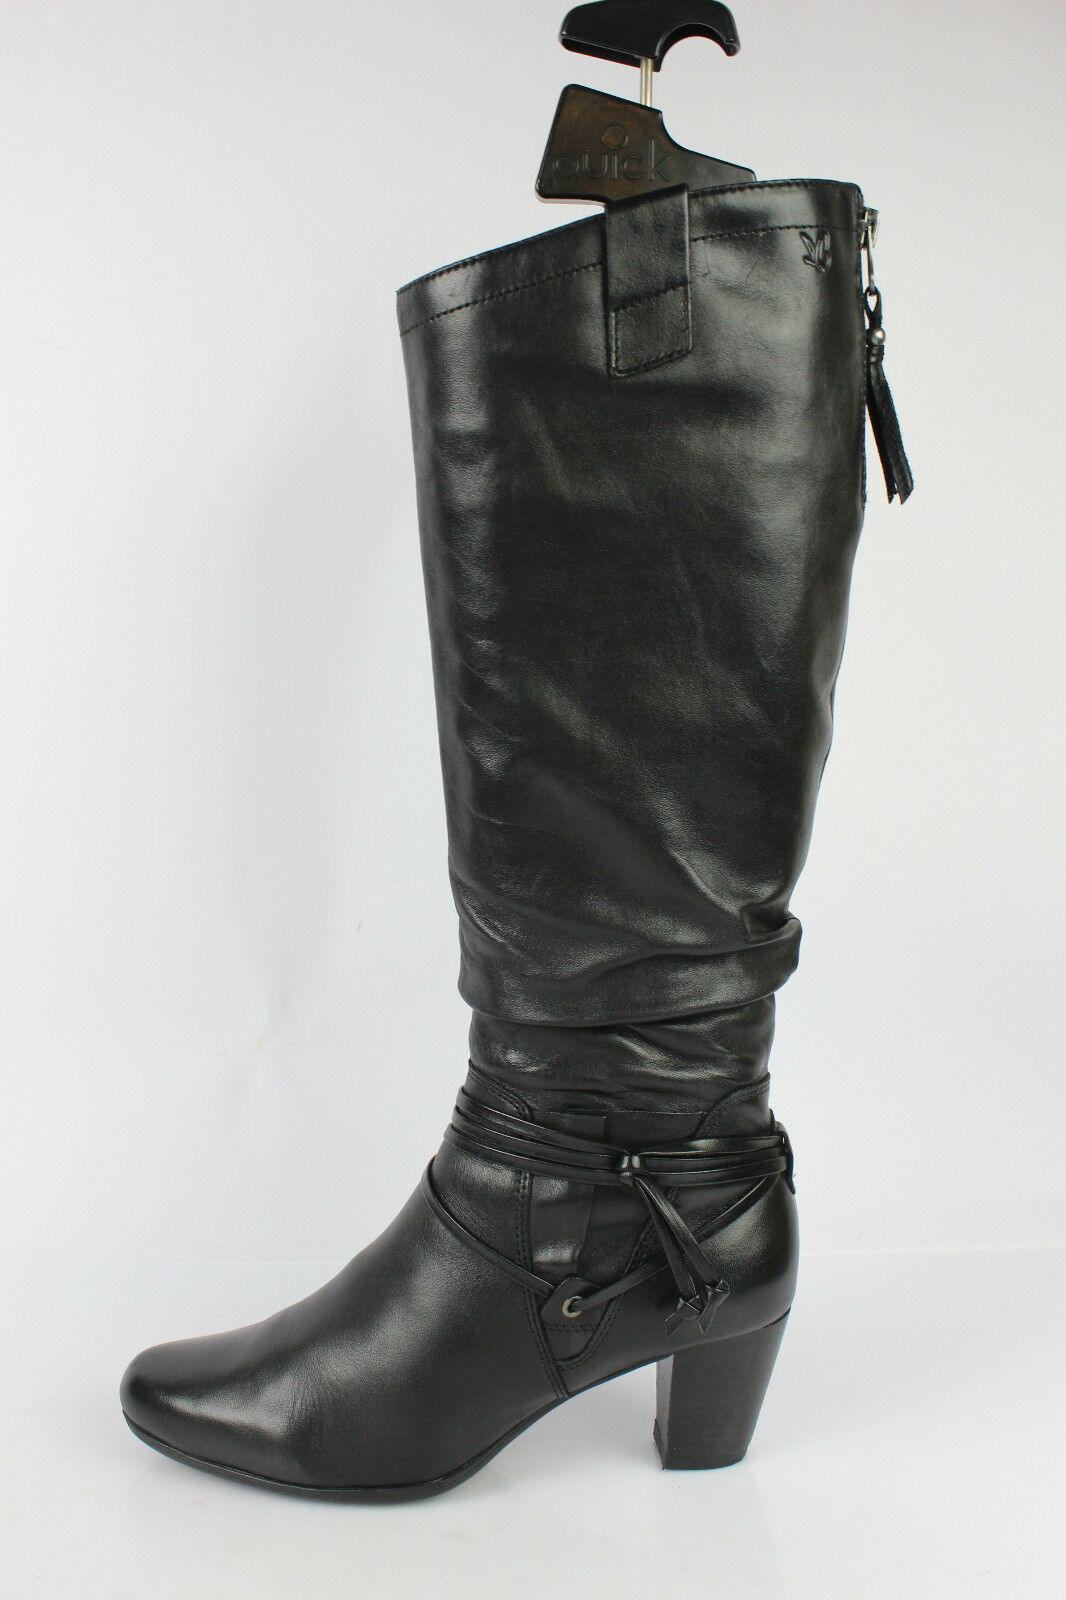 Boots CAPRICE Black Leather Leather Leather UK 4   FR 37 MINT 4c5518